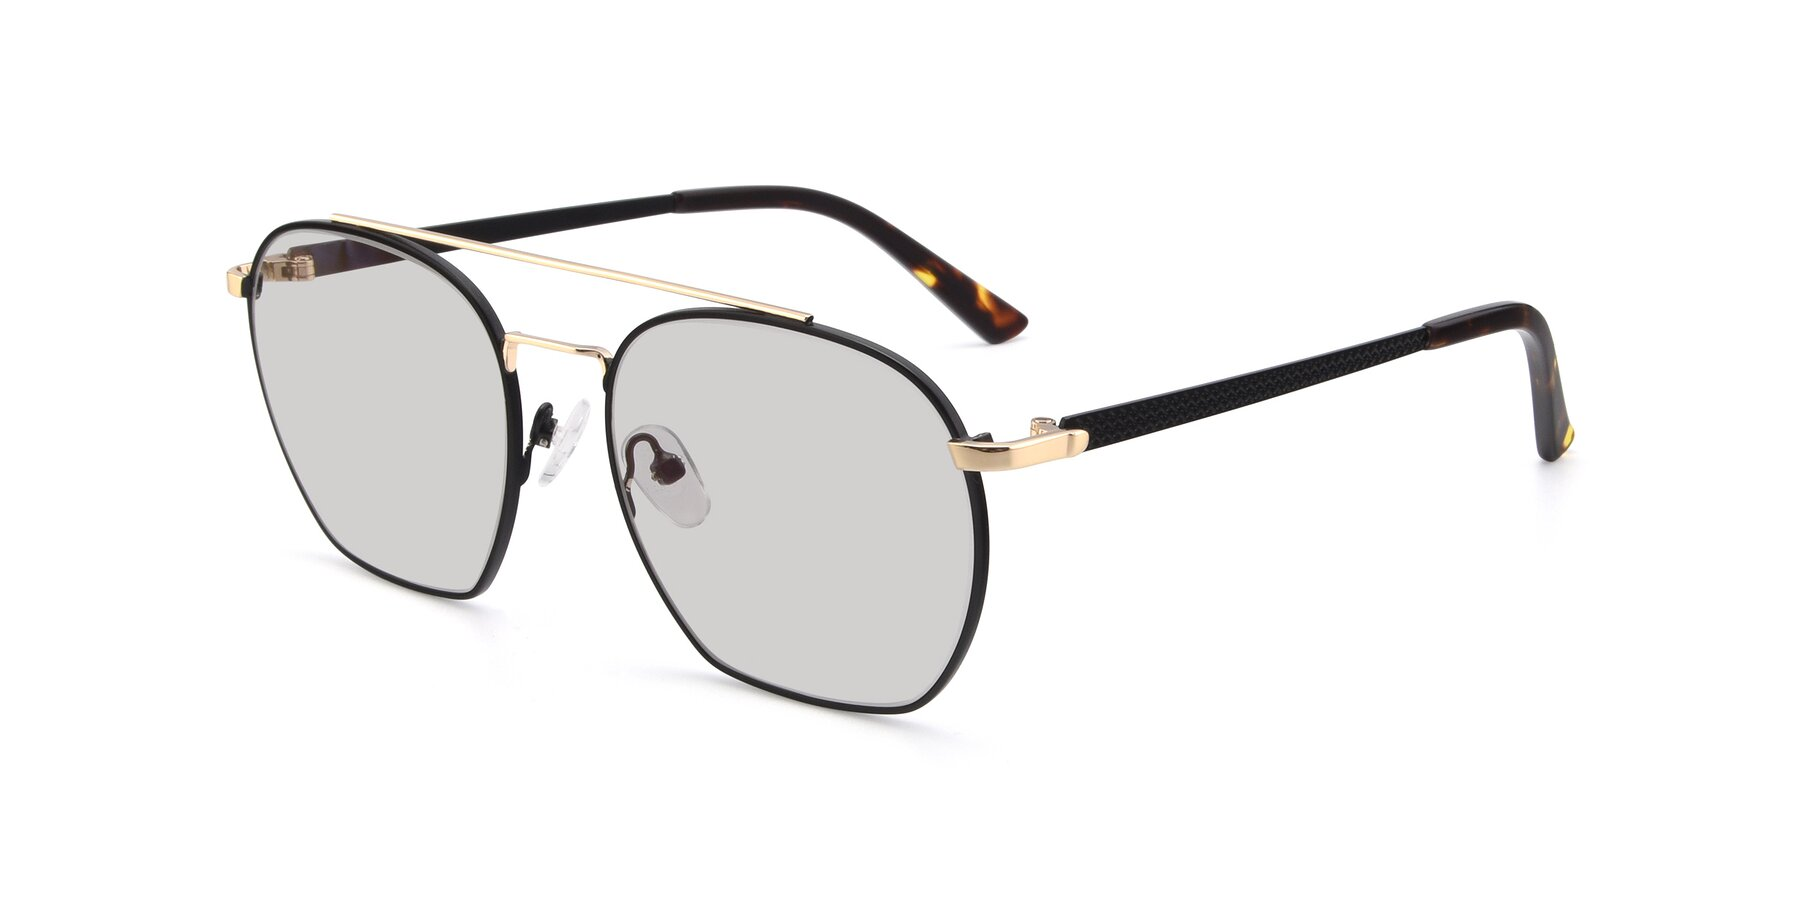 Angle of 9425 in Black-Gold with Light Gray Tinted Lenses